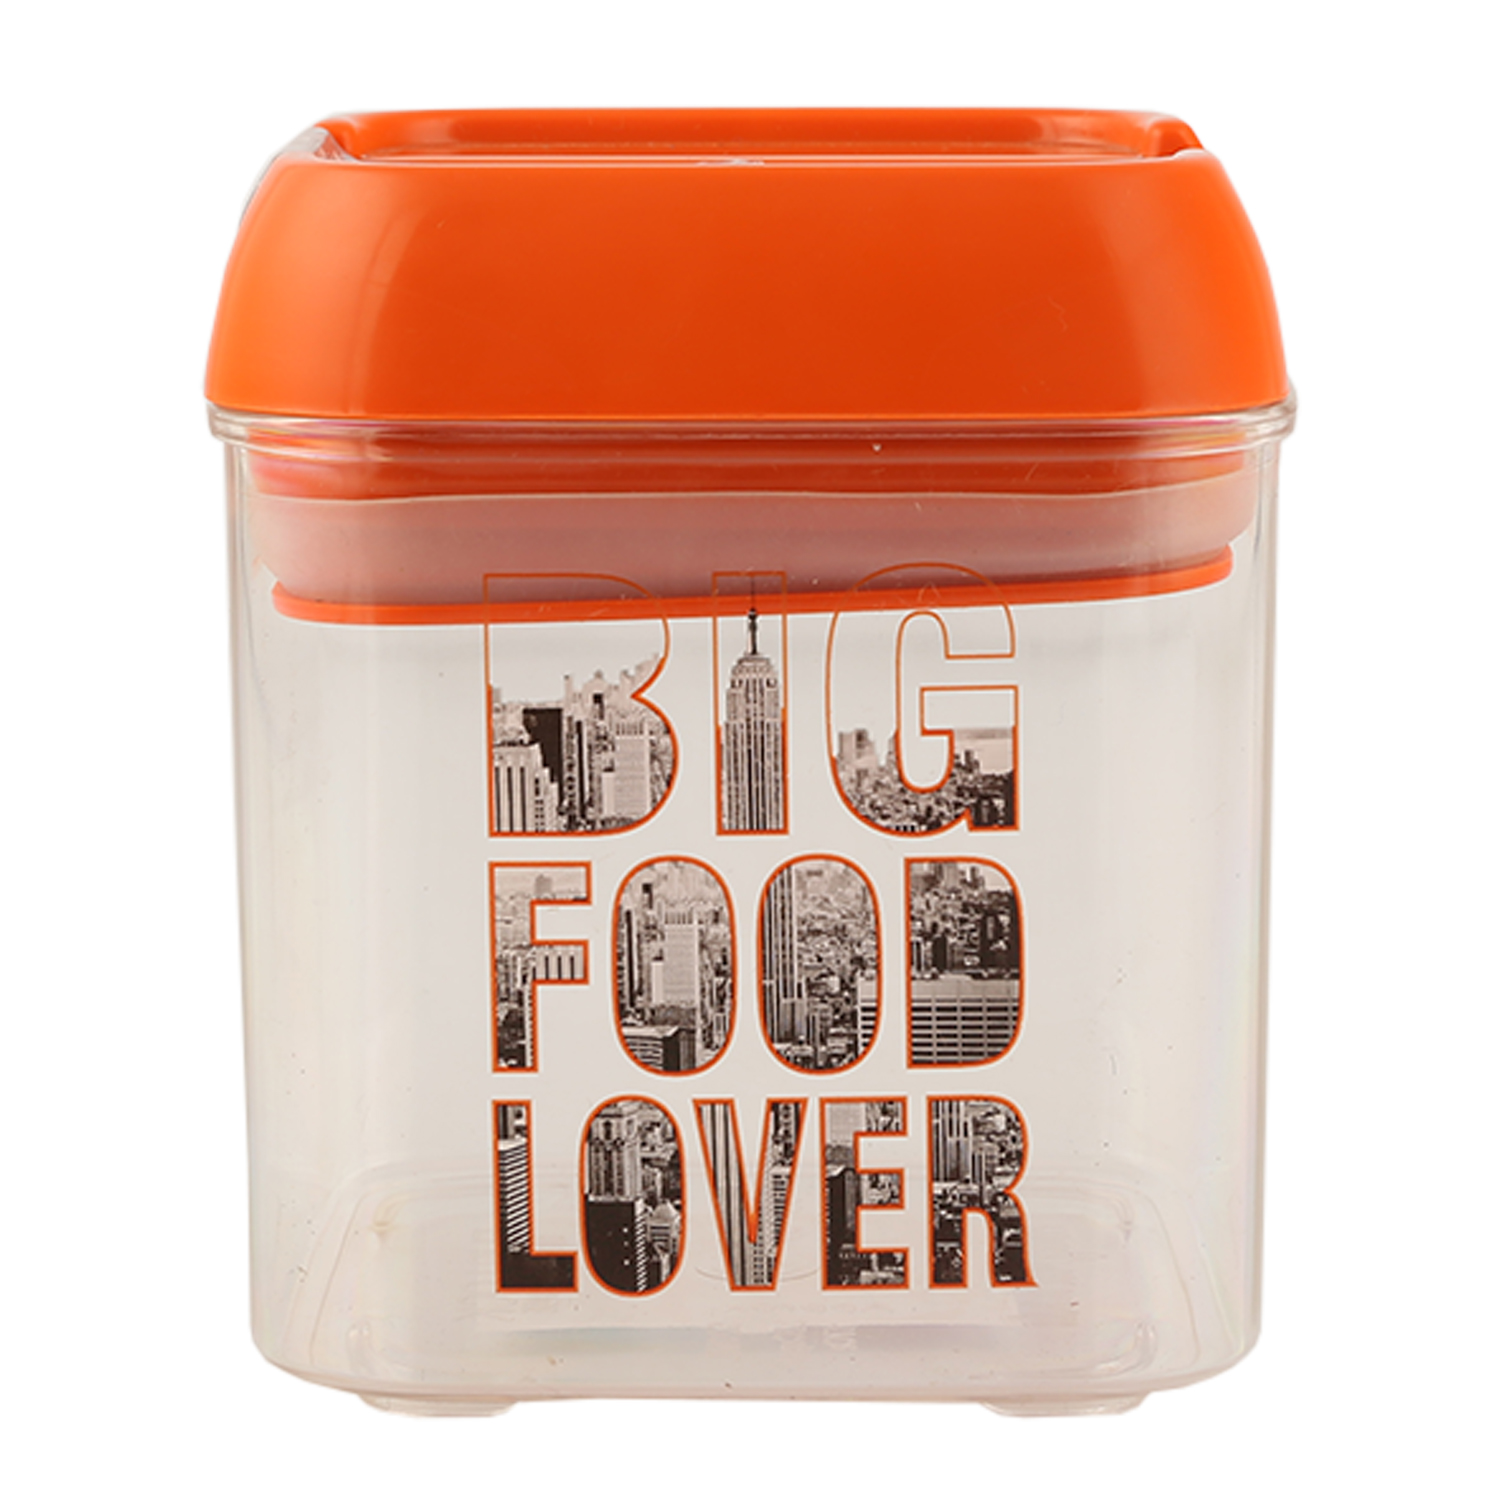 Big Food Lover Small Cont 520 Ml Opalware Containers in Orange Colour by Living Essence